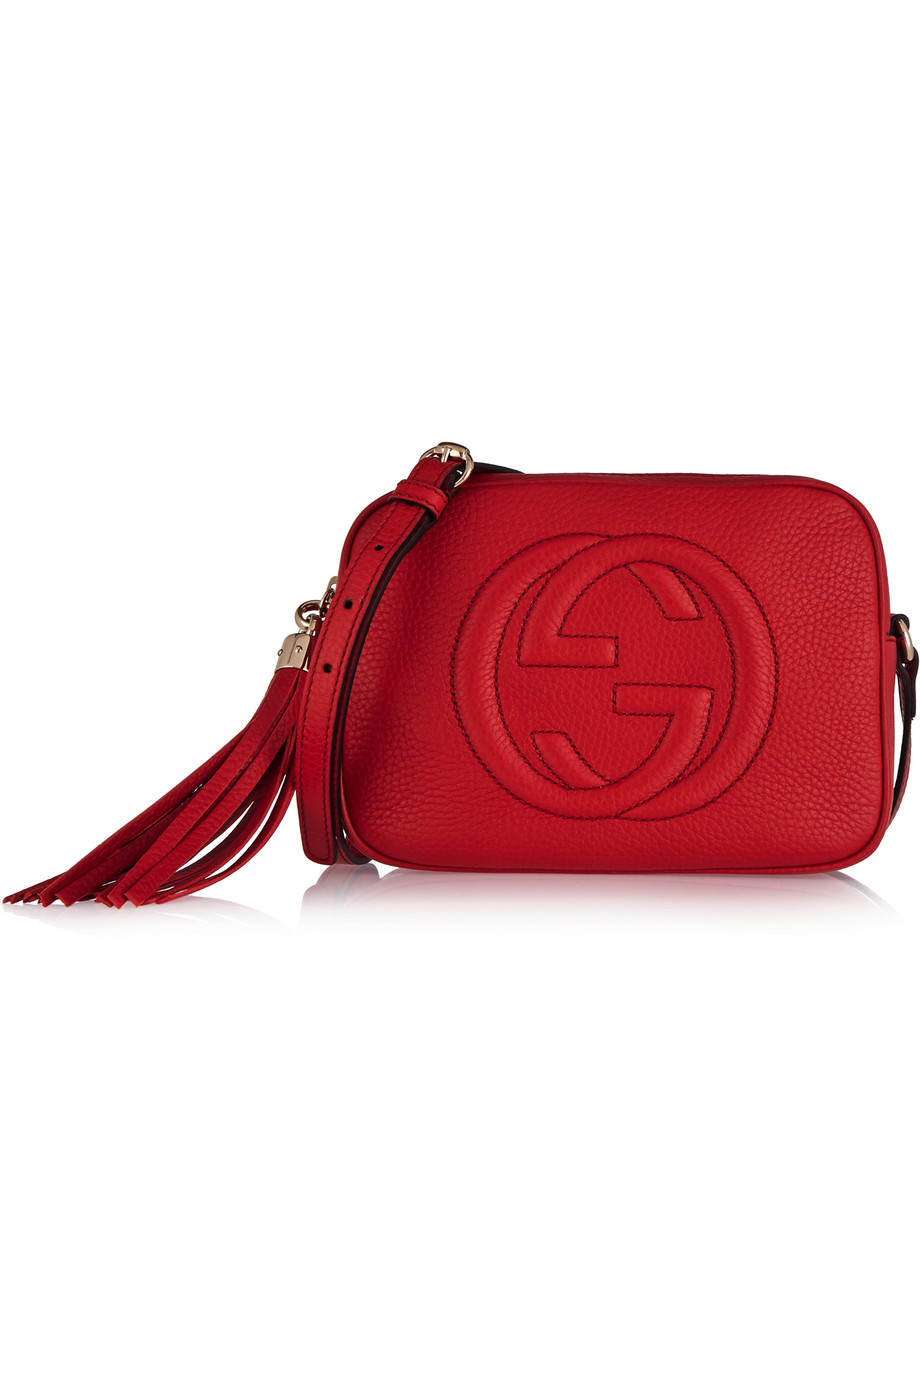 Gucci Soho Textured-Leather Shoulder Bag, Red, Women's, Size: One Size